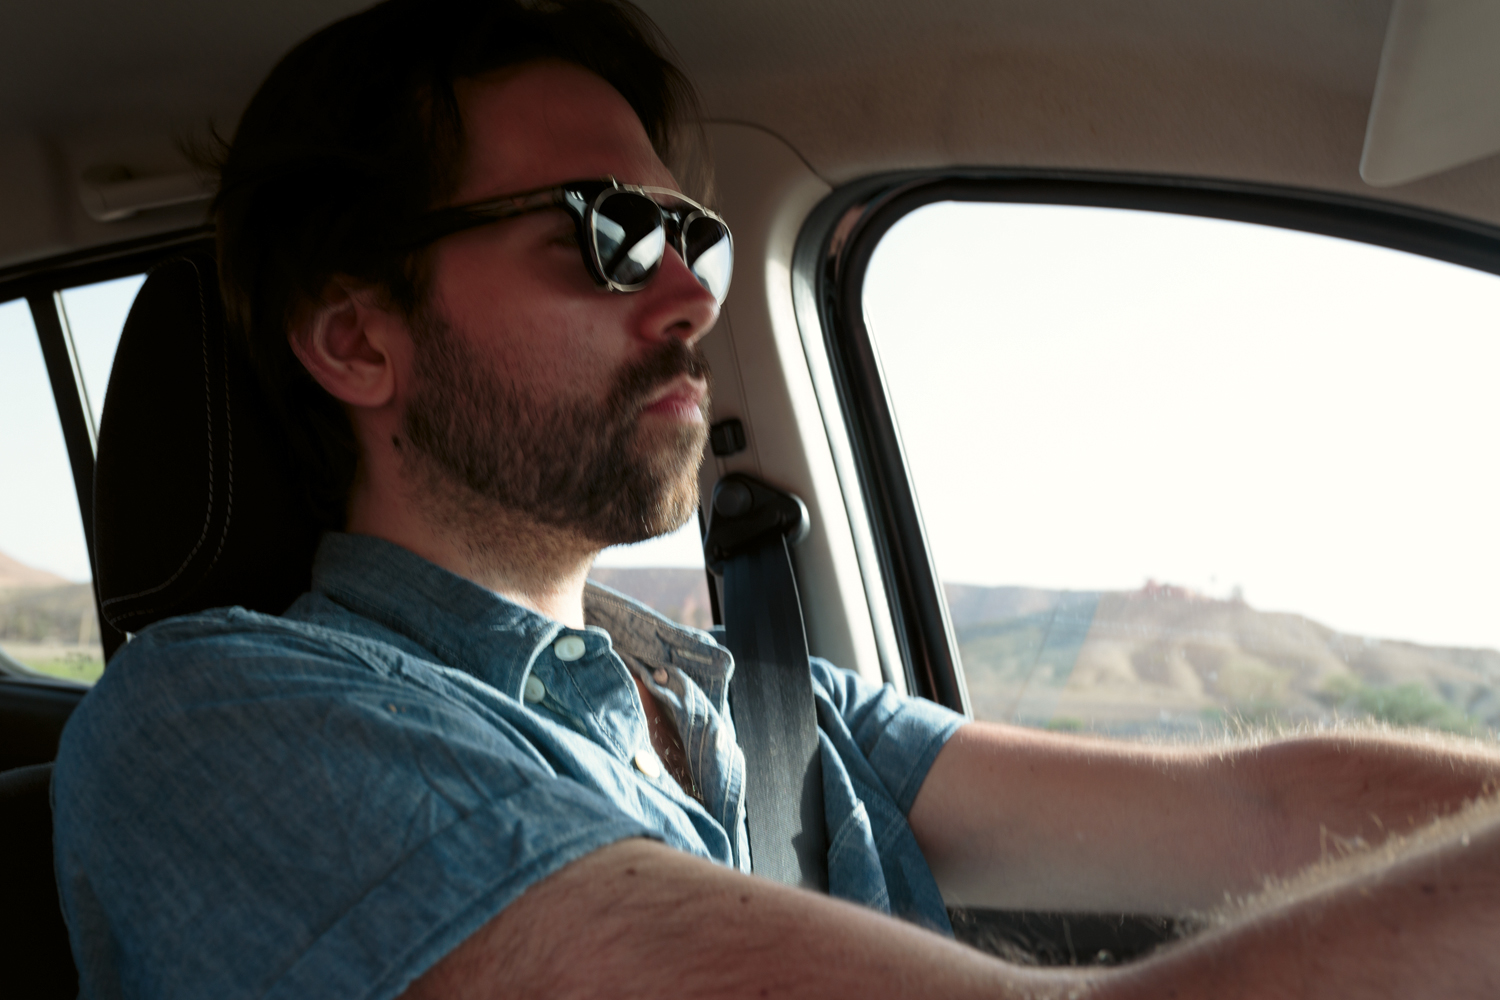 Me, driving a rental car, somewhere in the Moroccan desert